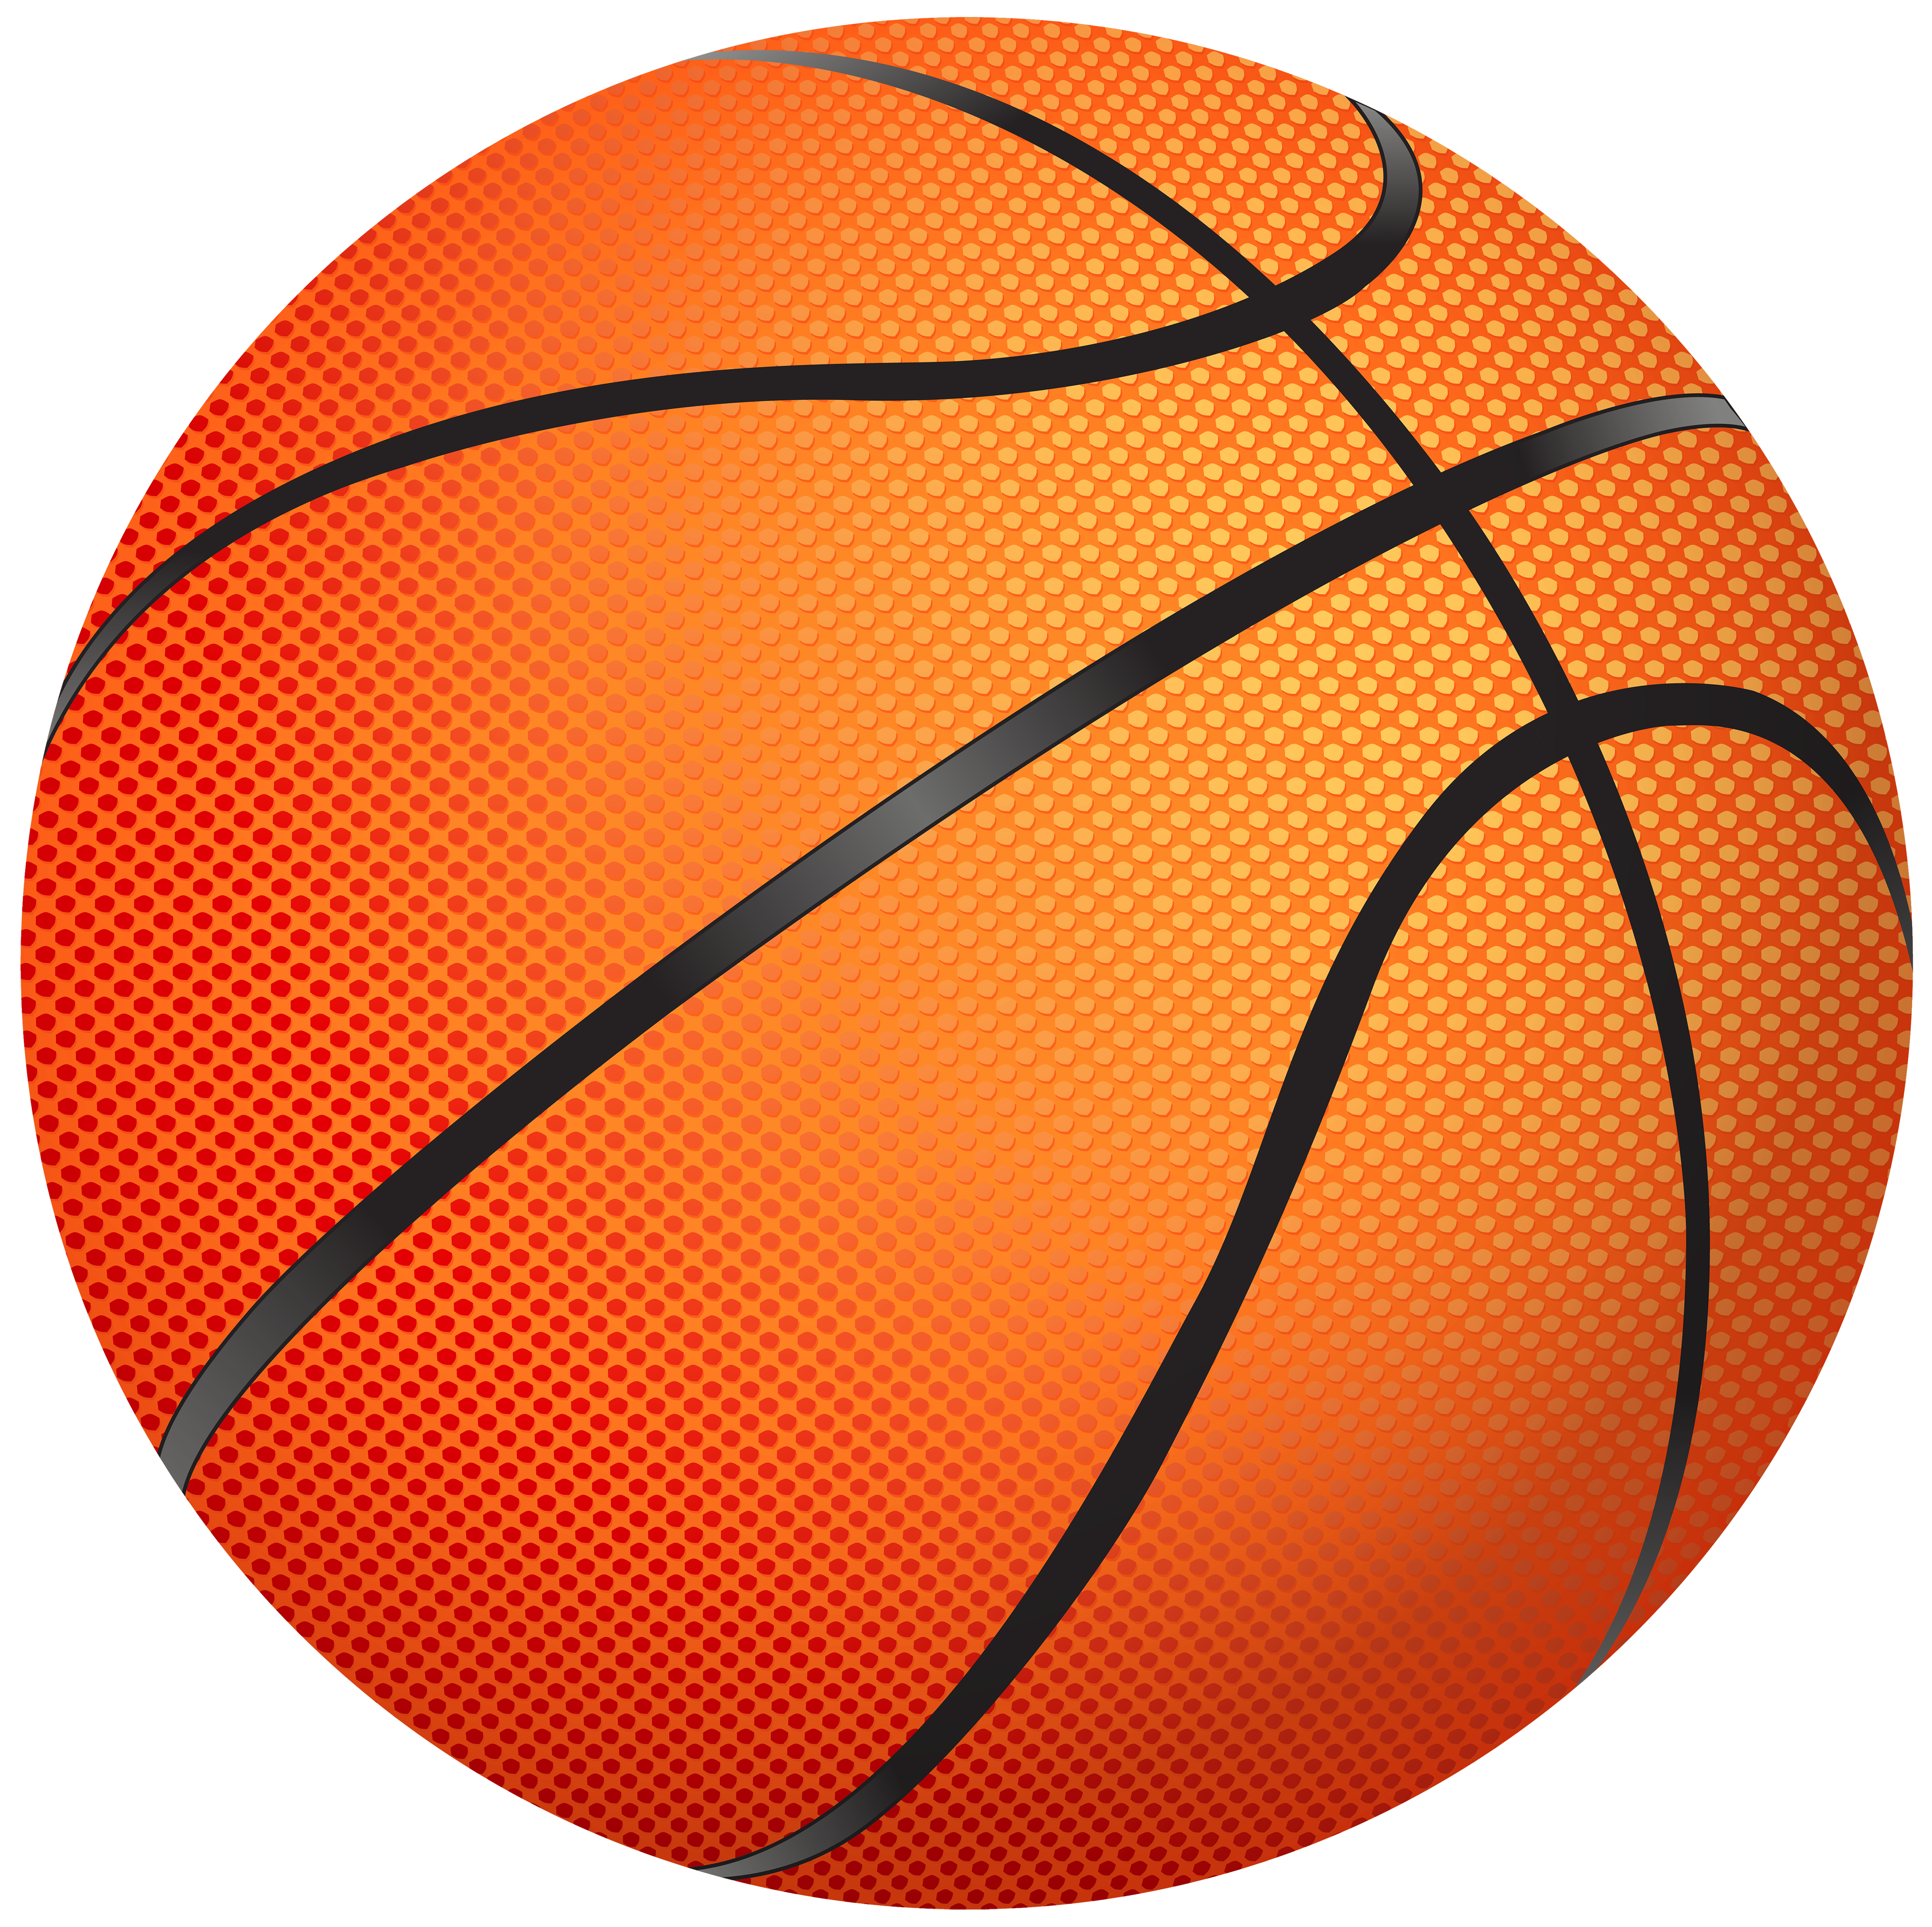 Png best web. Basketball clipart transparent background